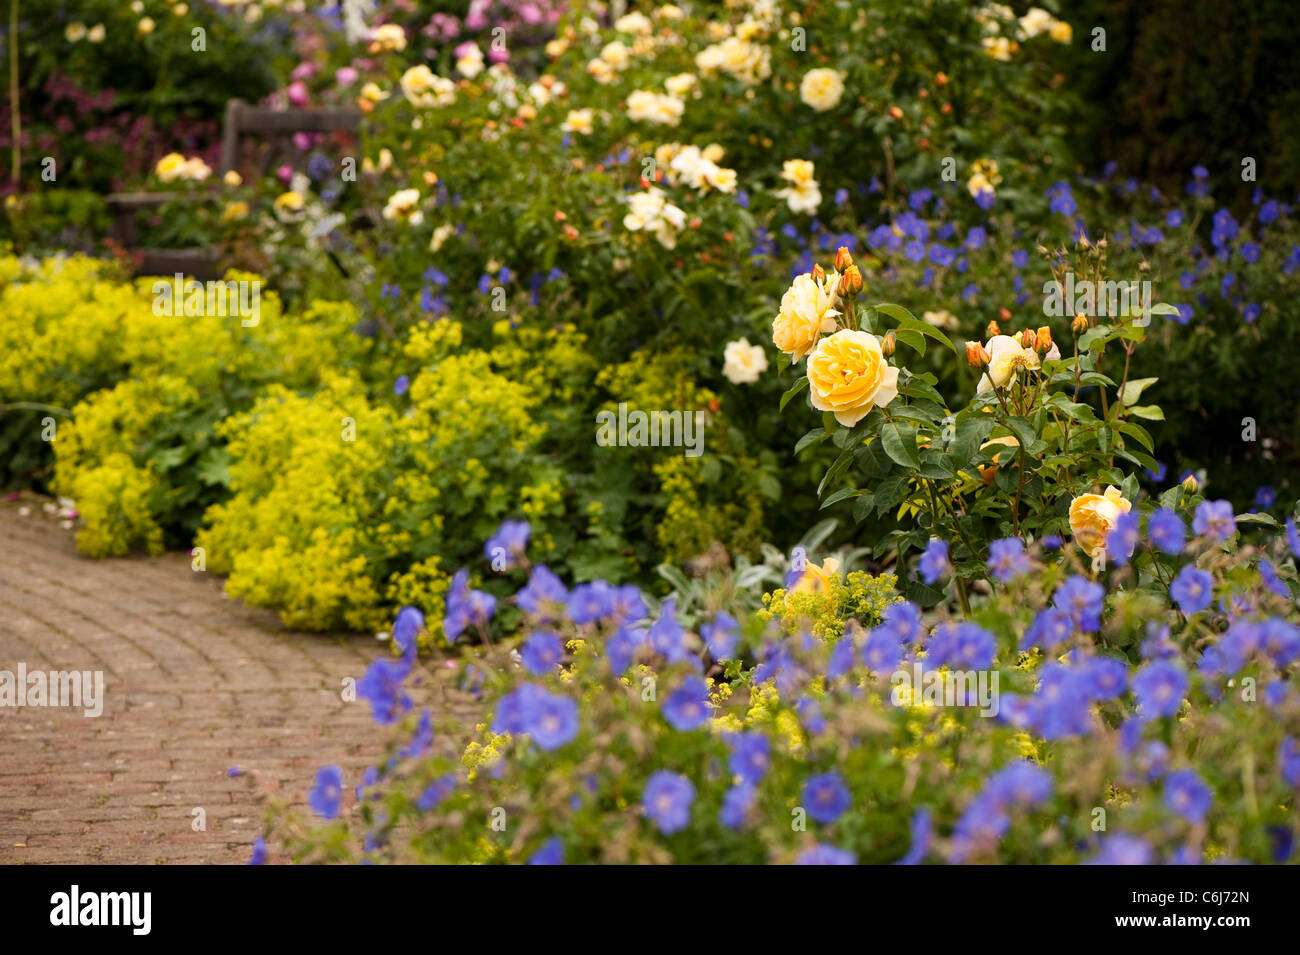 The shrub rose garden at rhs rosemoor with rosa graham thomas stock the shrub rose garden at rhs rosemoor with rosa graham thomas ausmas in the foreground thecheapjerseys Images